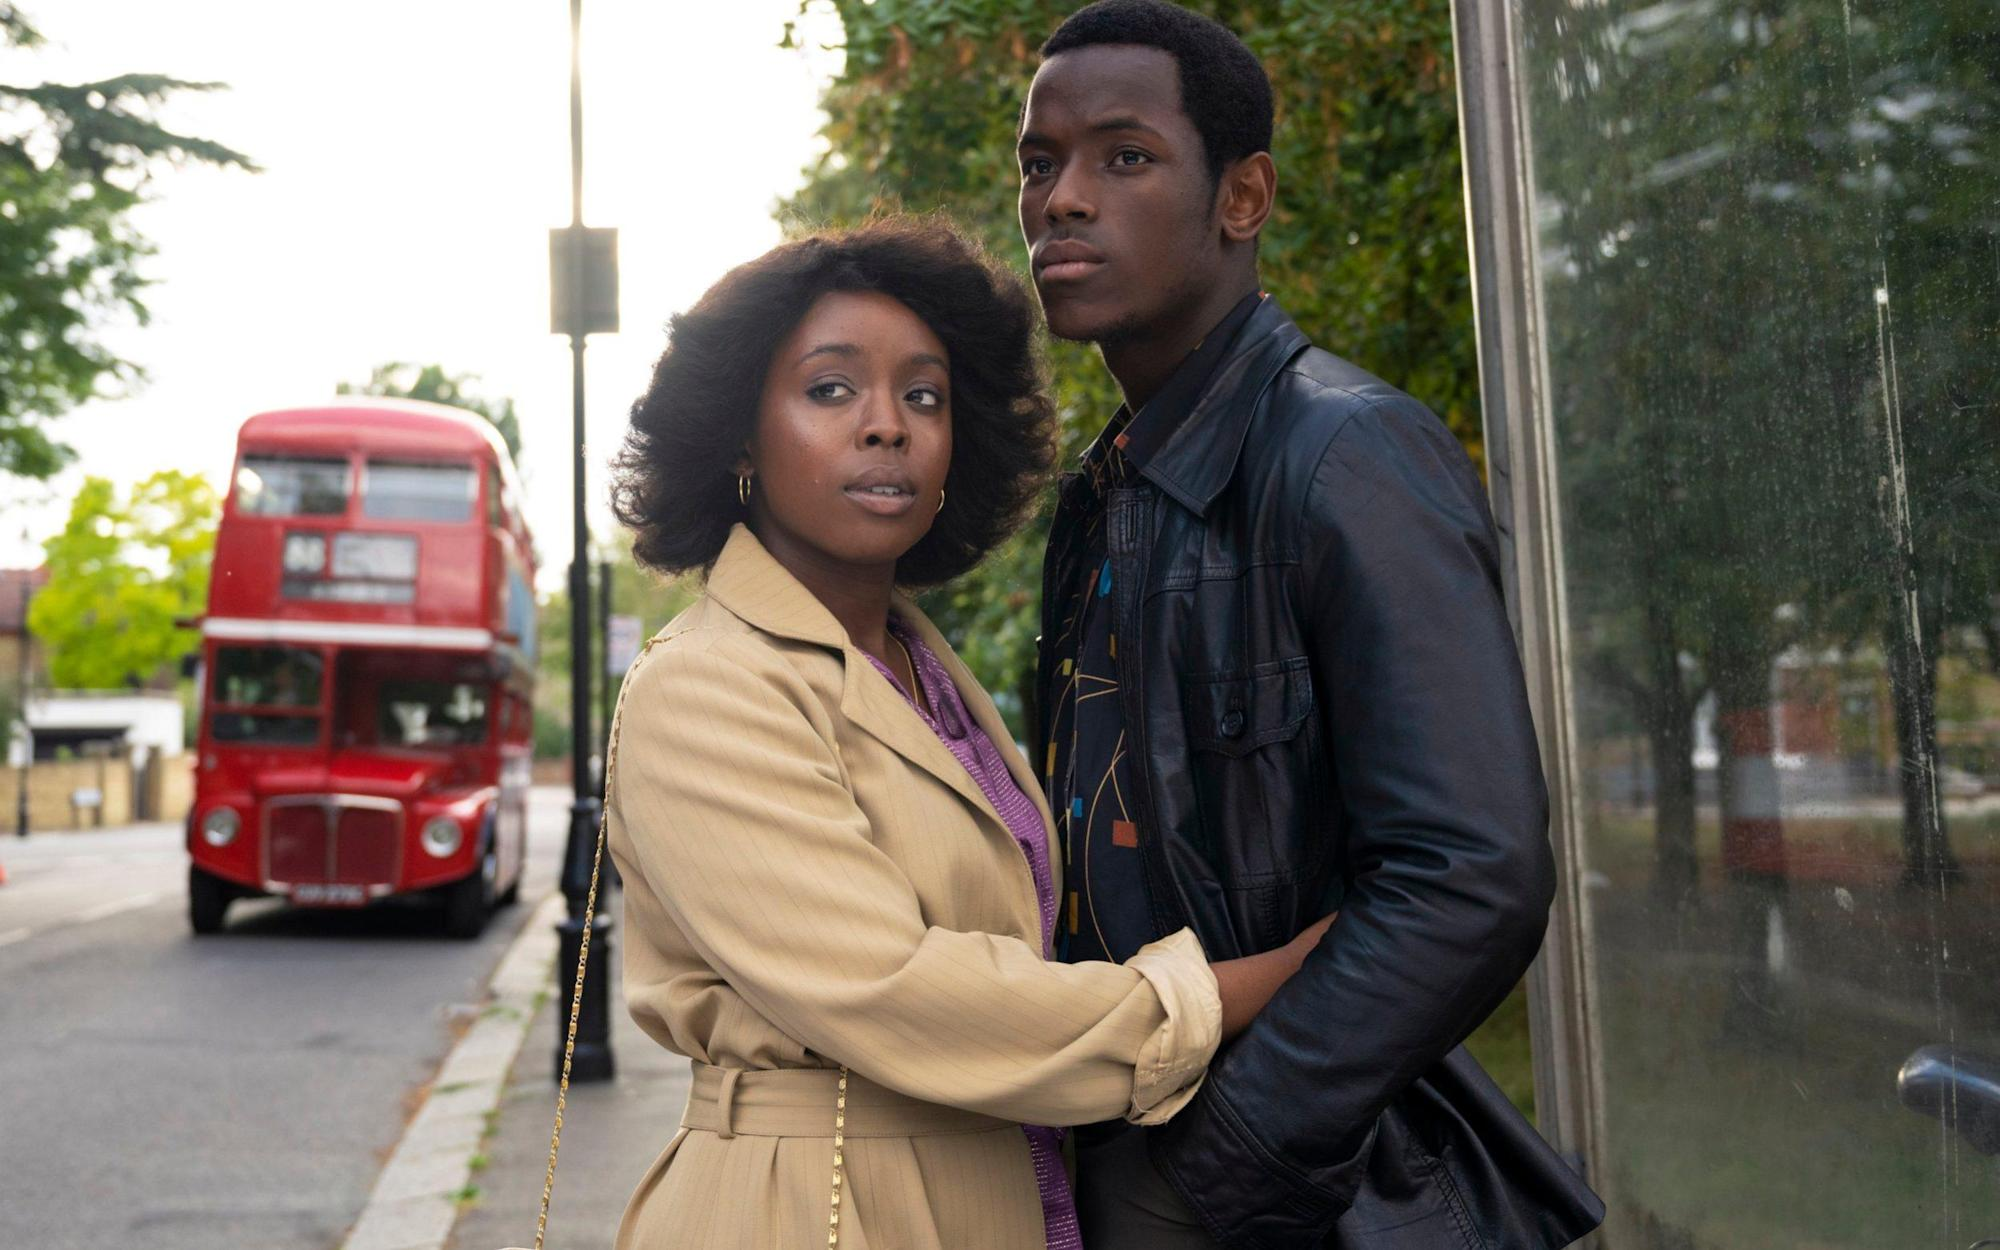 Bafta recognises Steve McQueen's Small Axe series on West Indian migrants after 'So White' accusations